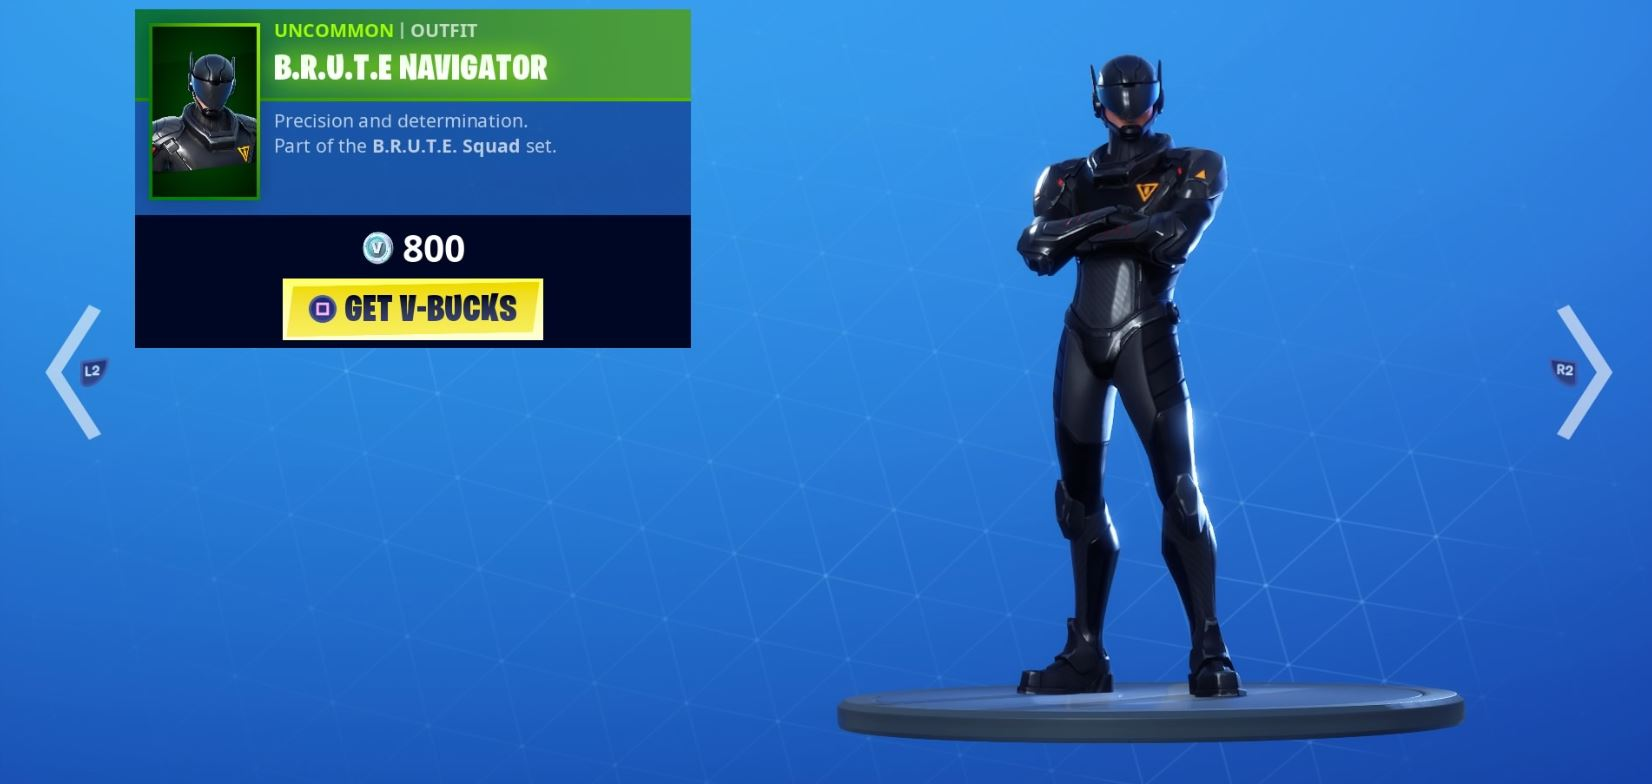 , New BRUTE Squad mech pilot Fortnite skins drop in item shop